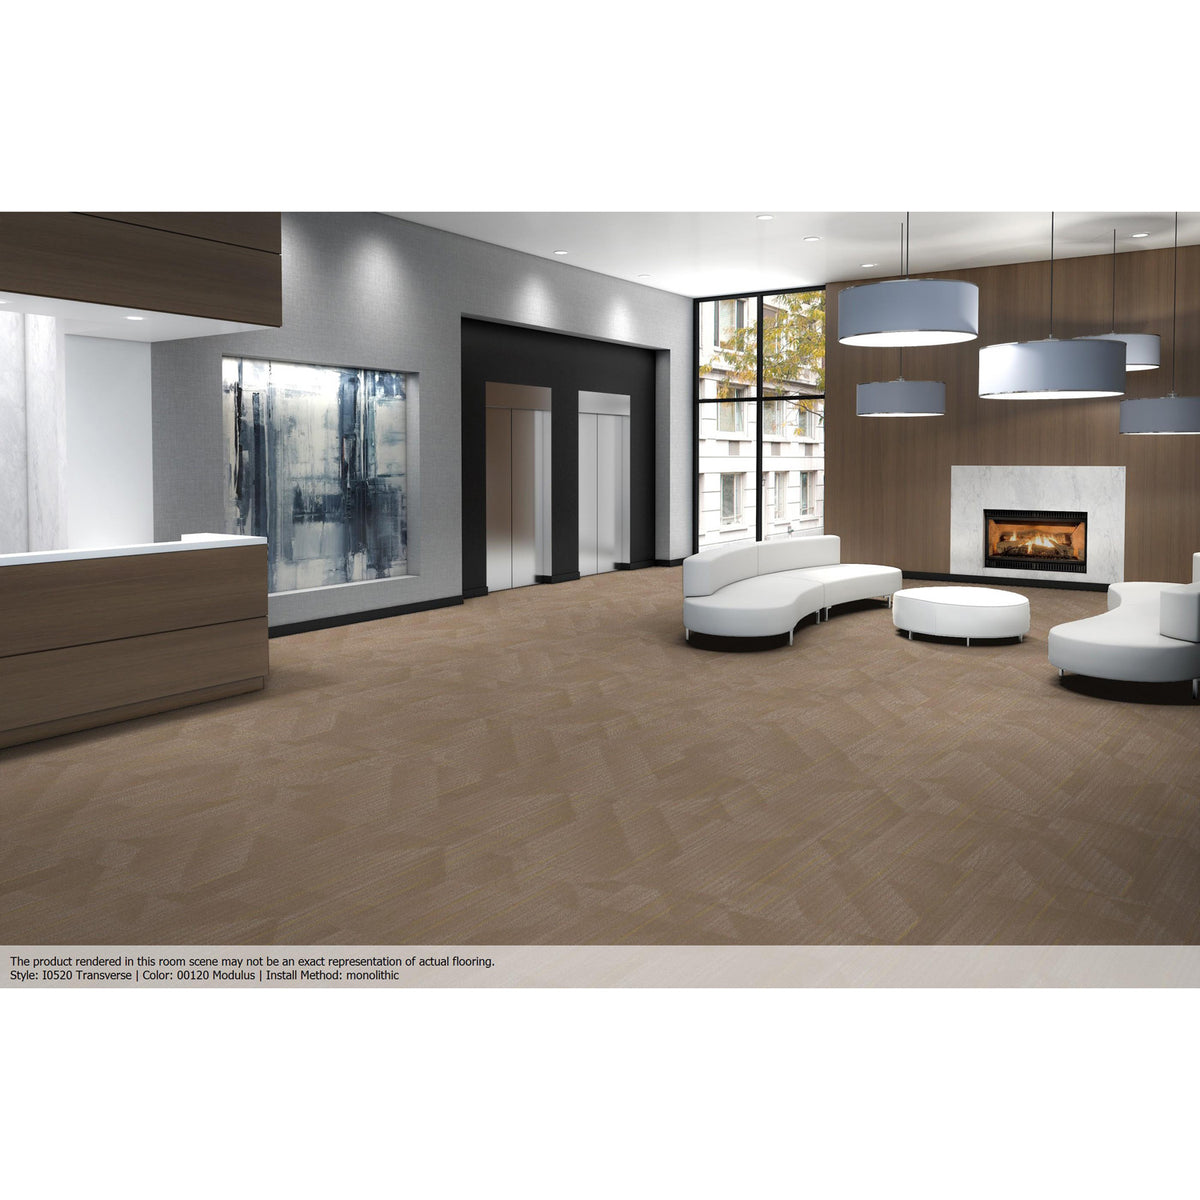 Patcraft - Infrastructure Collection - Transverse Carpet Tile - Modulus